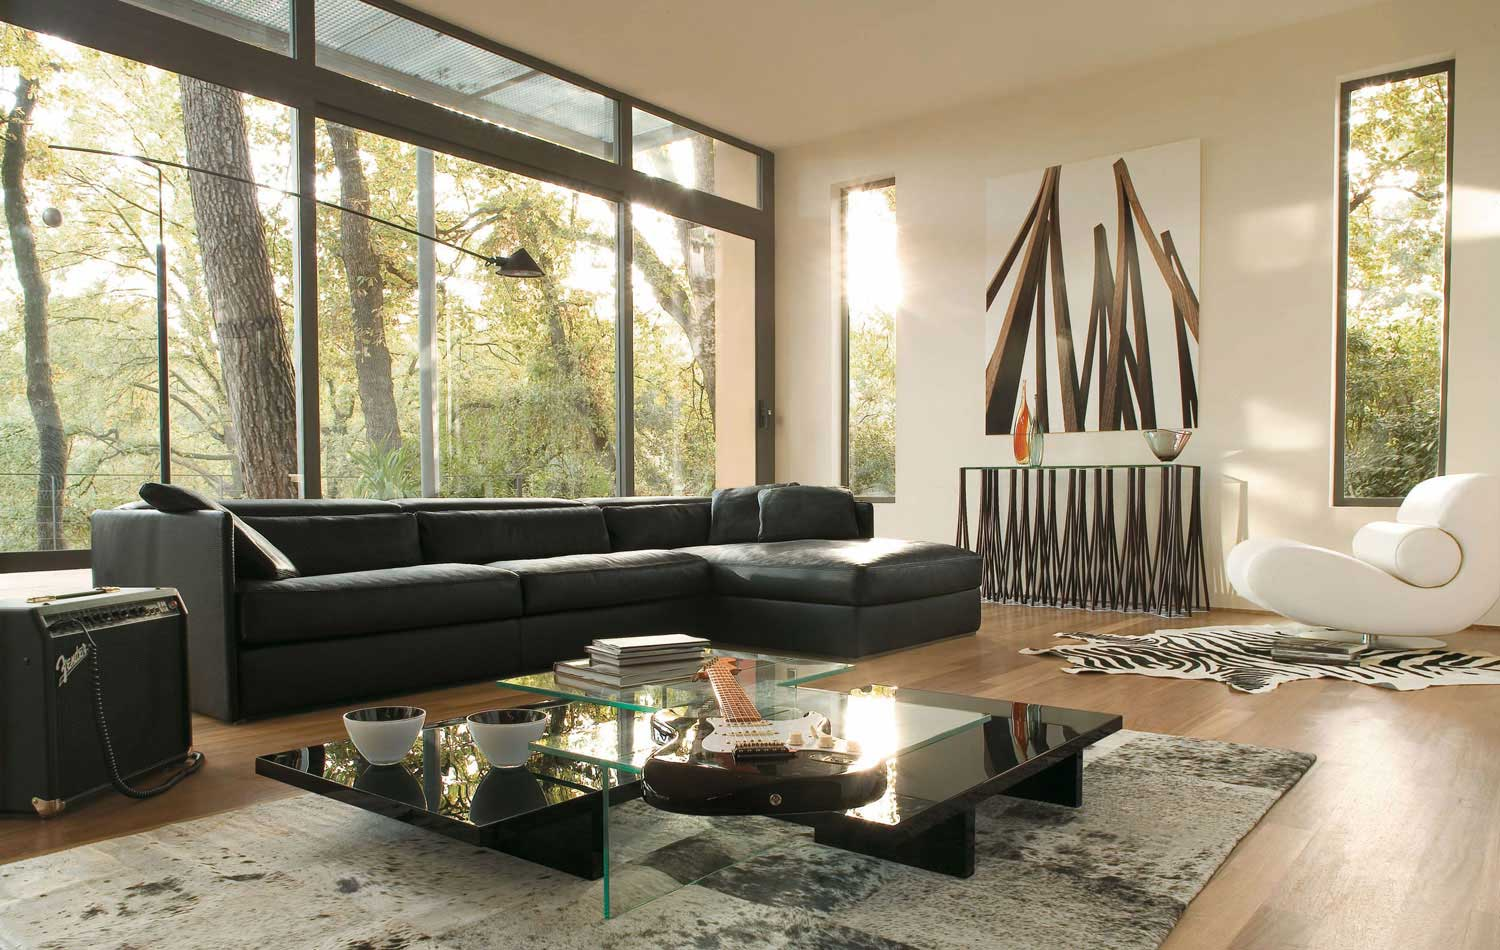 Living Room Inspiration 120 Modern Sofas by Roche Bobois Part 23  Architecture  Design